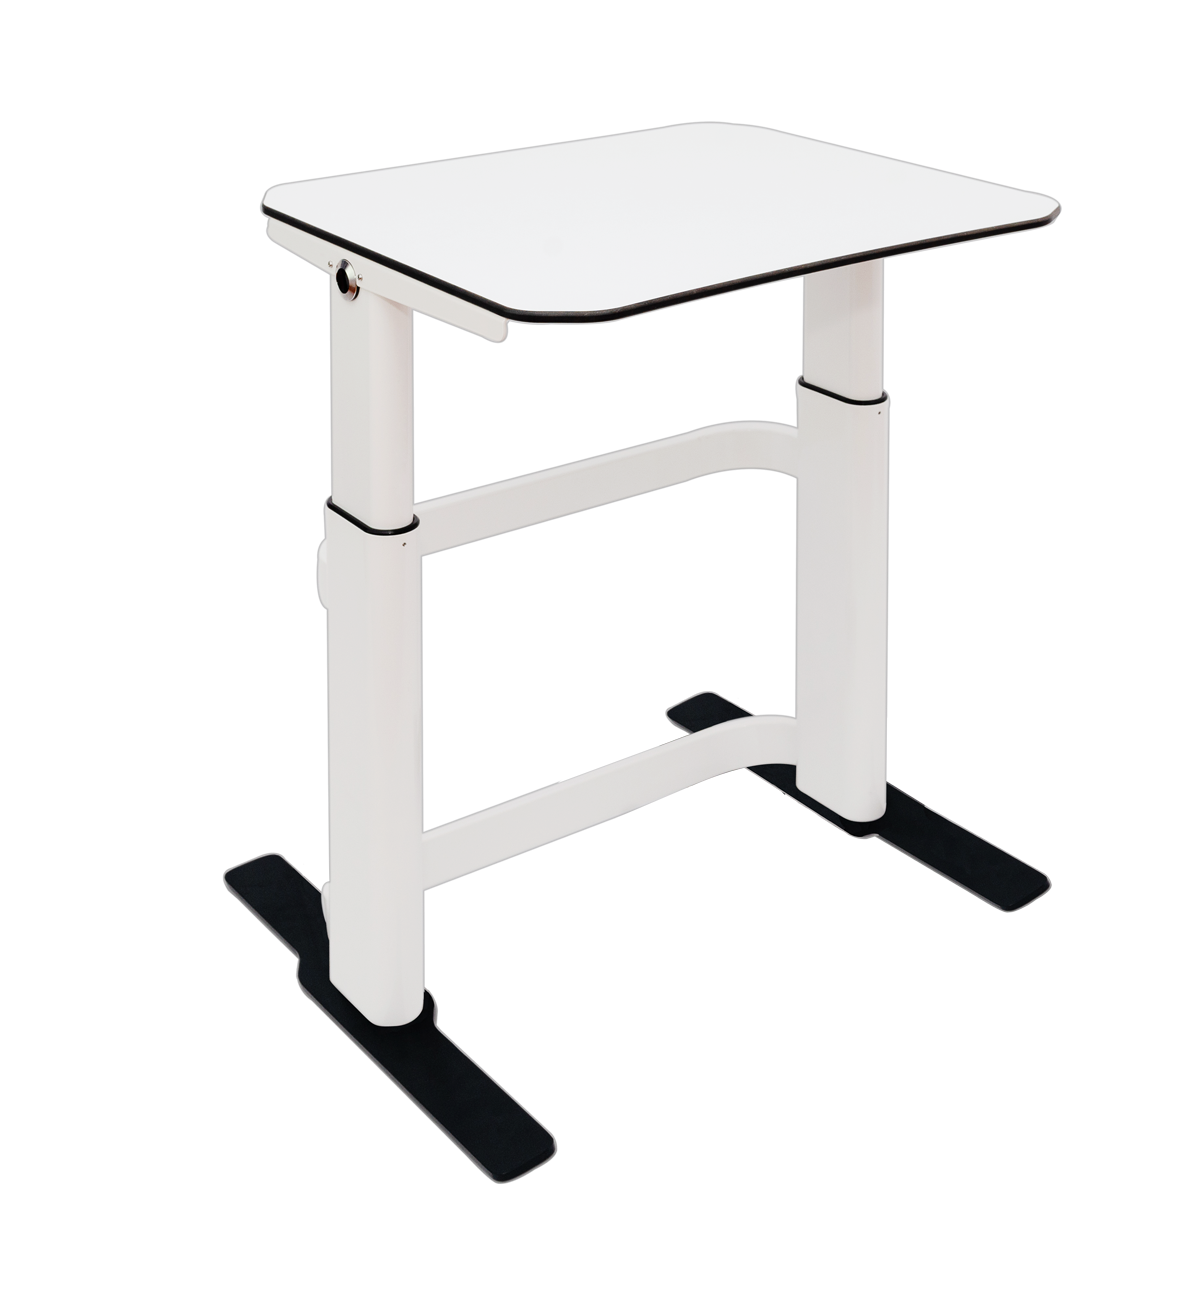 Amperstand-Small Desk-Non Writable-Steel Feet